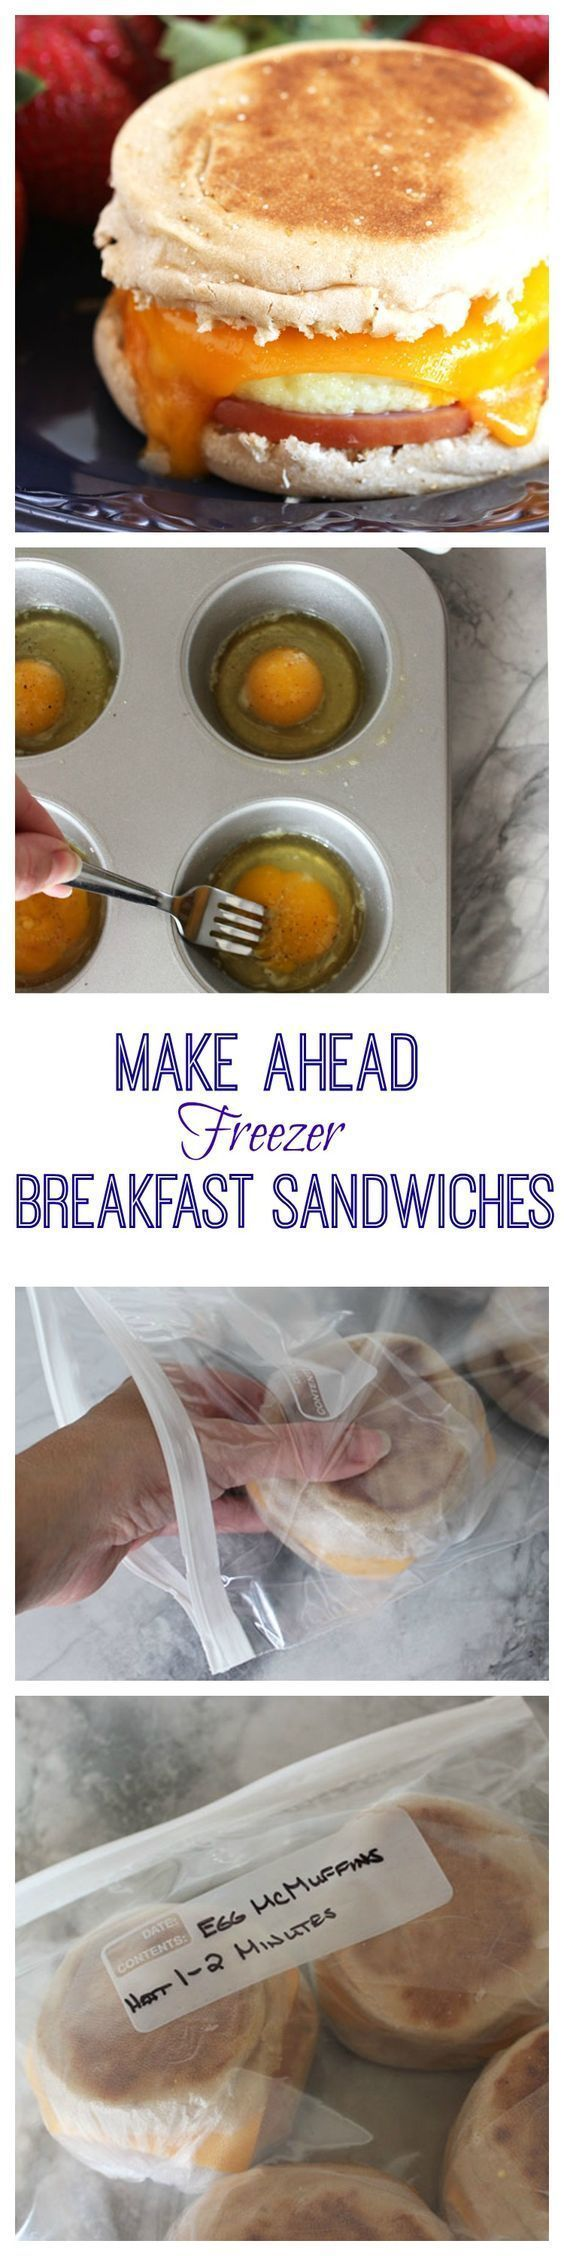 make ahead breakfast sandwiches that are ready when you are.  These copycat Egg McMuffins are frozen for quick, healthy breakfasts on the go.   @suburbansoapbox